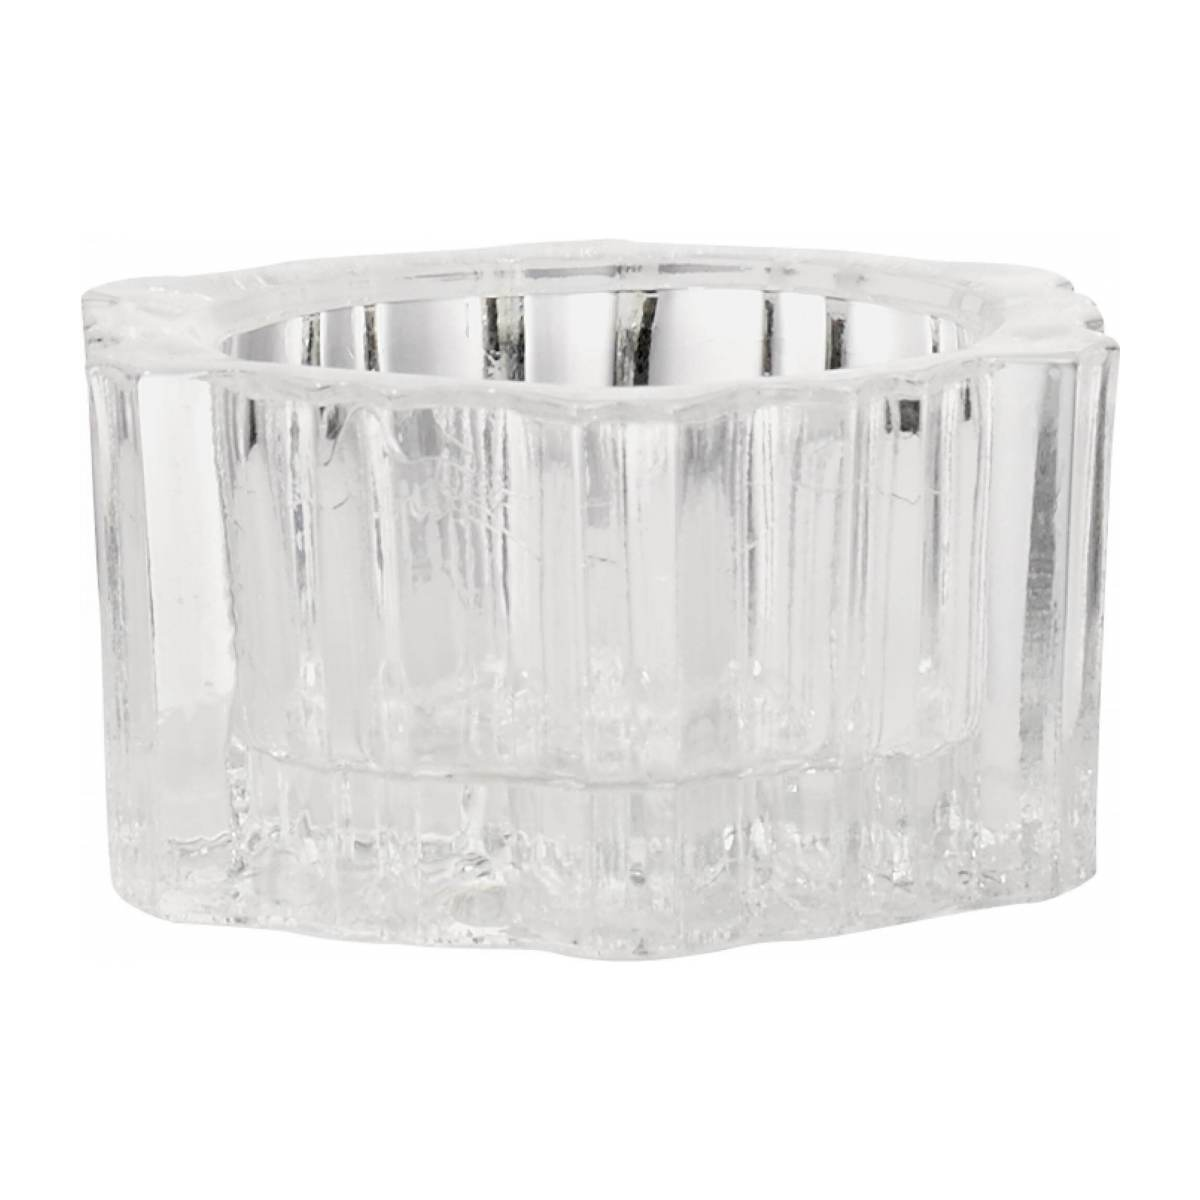 glass candle holders x6 n°1